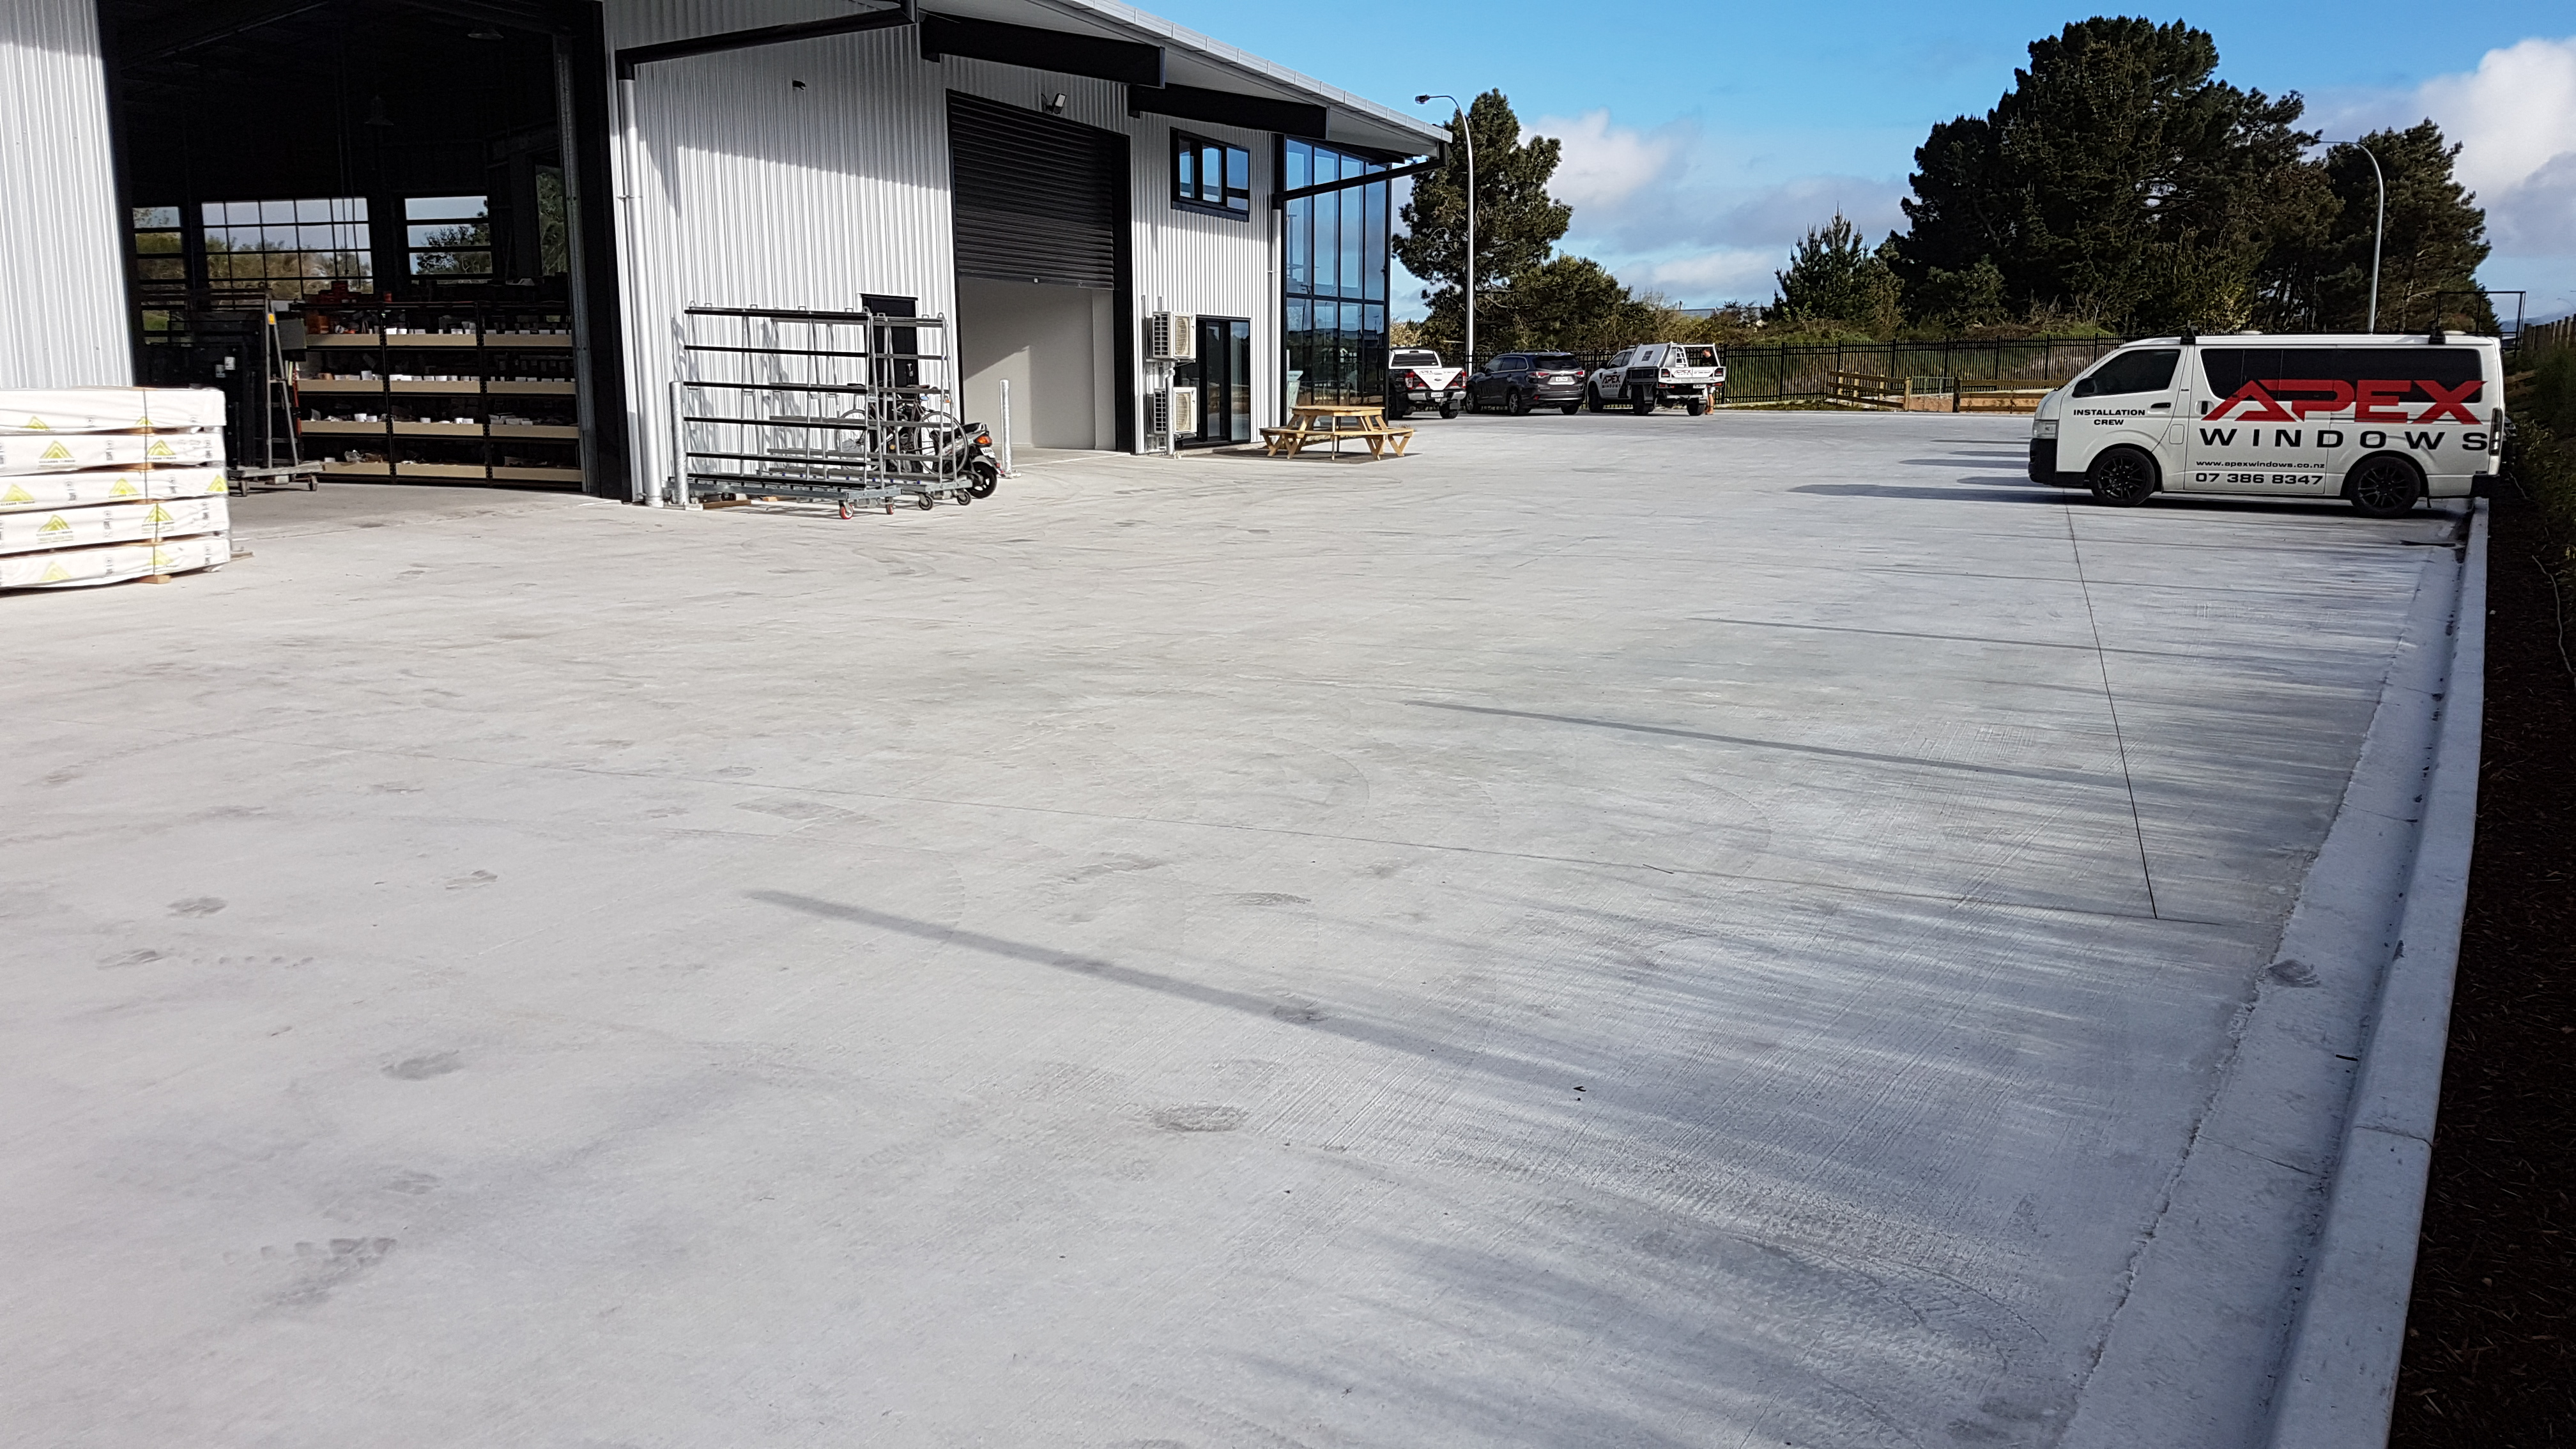 Concrete work in a commercial yard loading bay and parking zone with concrete reinforced with Inforce Proforce hookend steel fibre